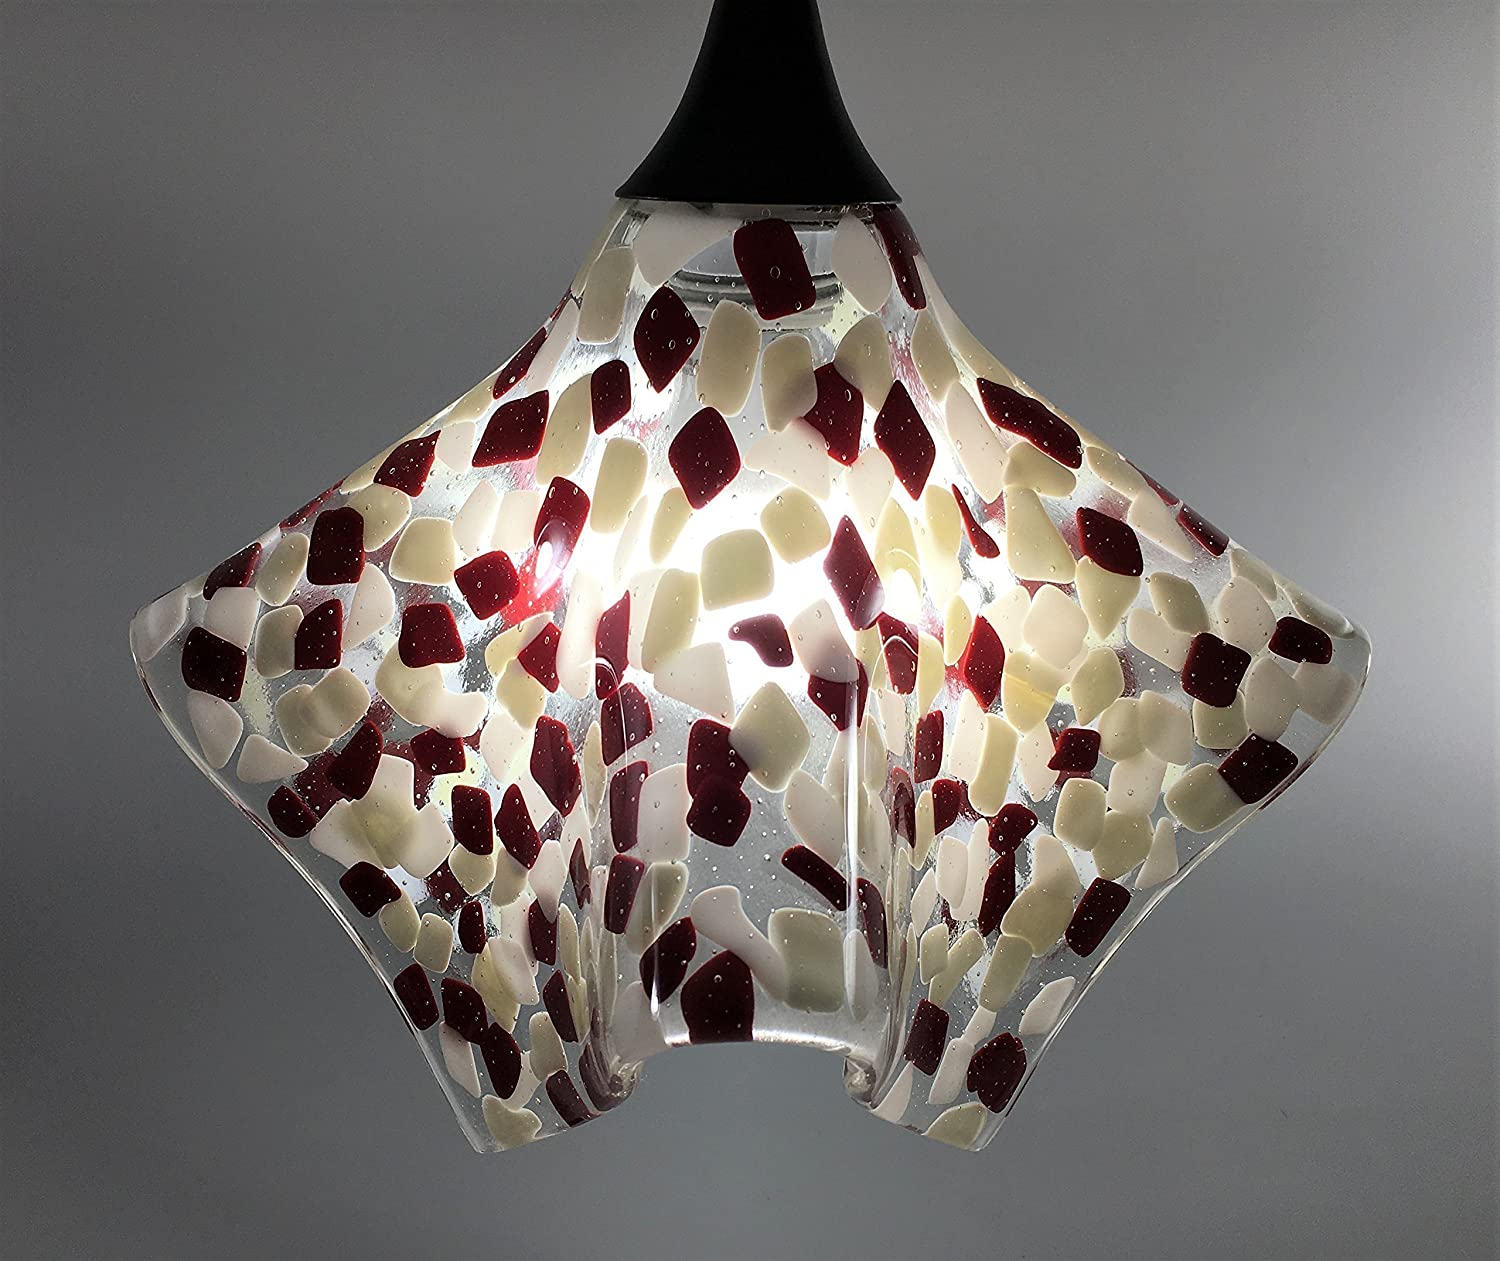 Choice of Colors and Size Embedded Glass Chip Pendant Light Shade